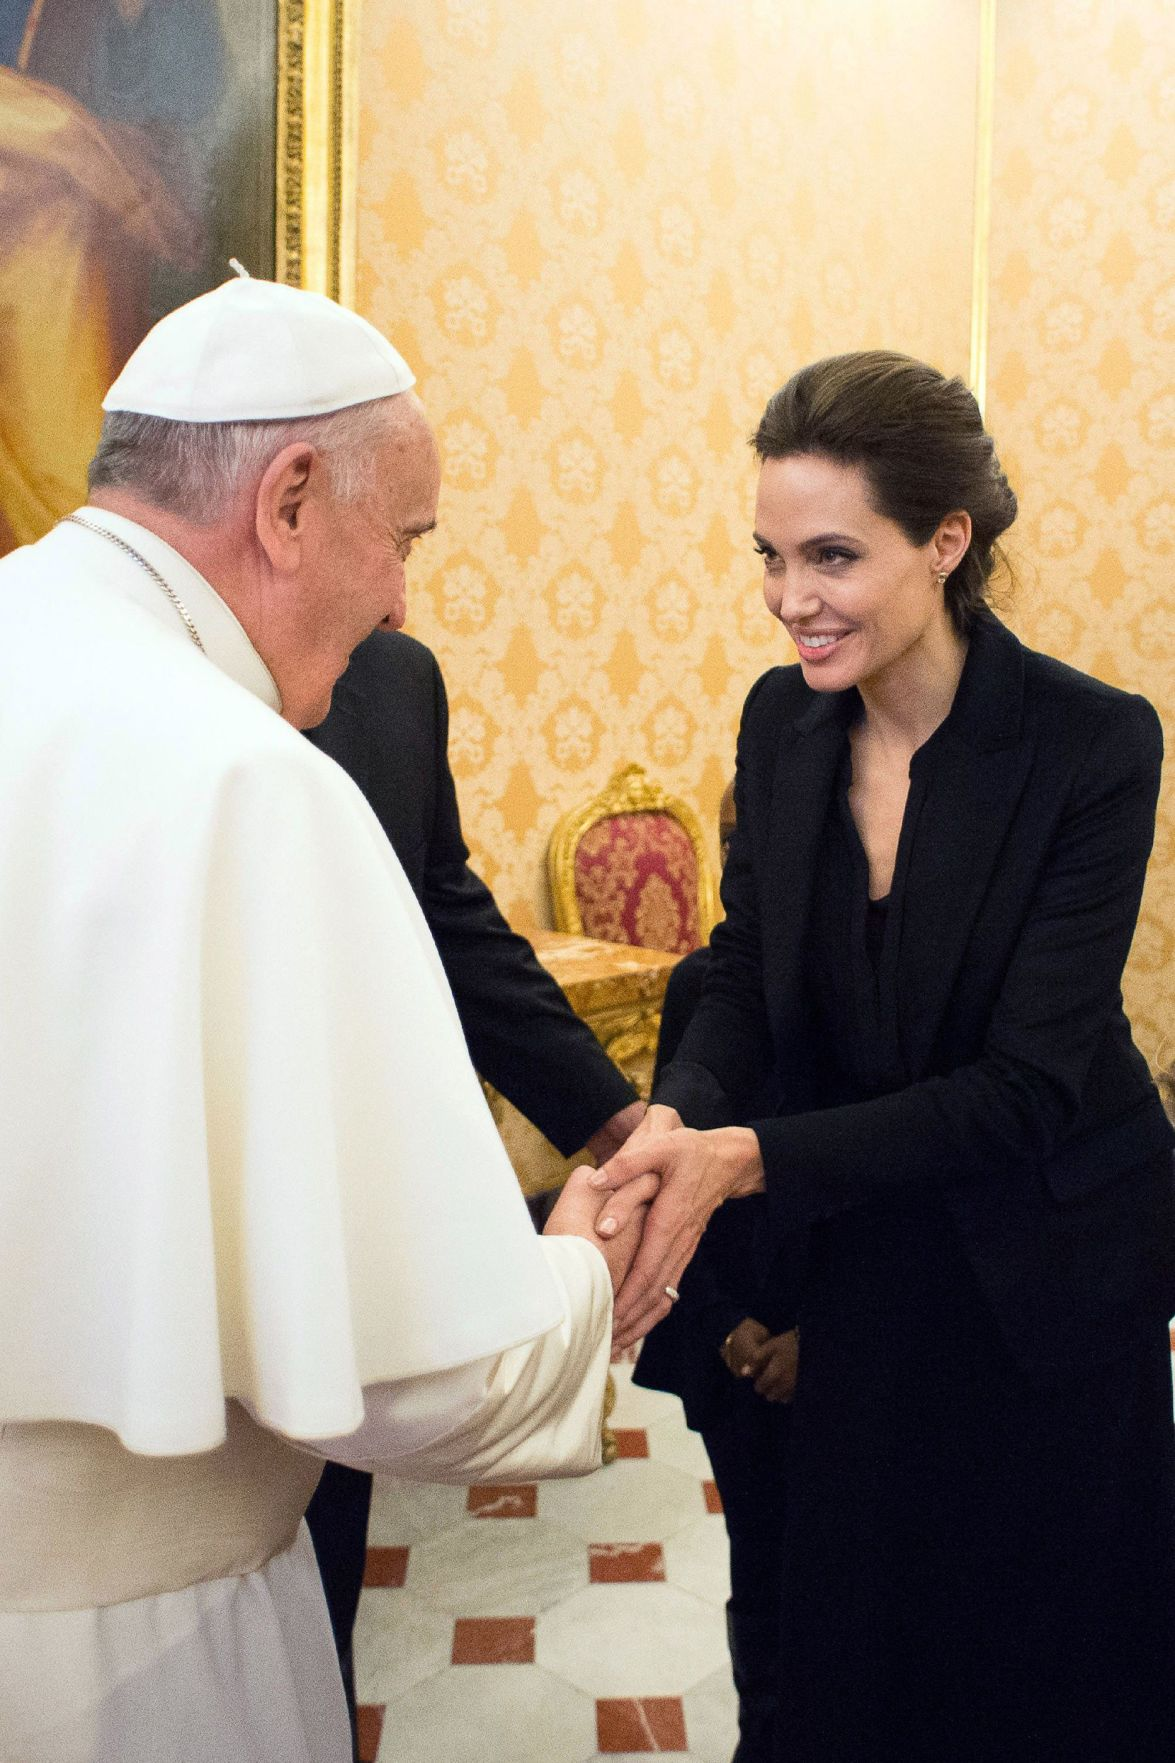 Jolie screens 'Unbroken' in Vatican, meets pope